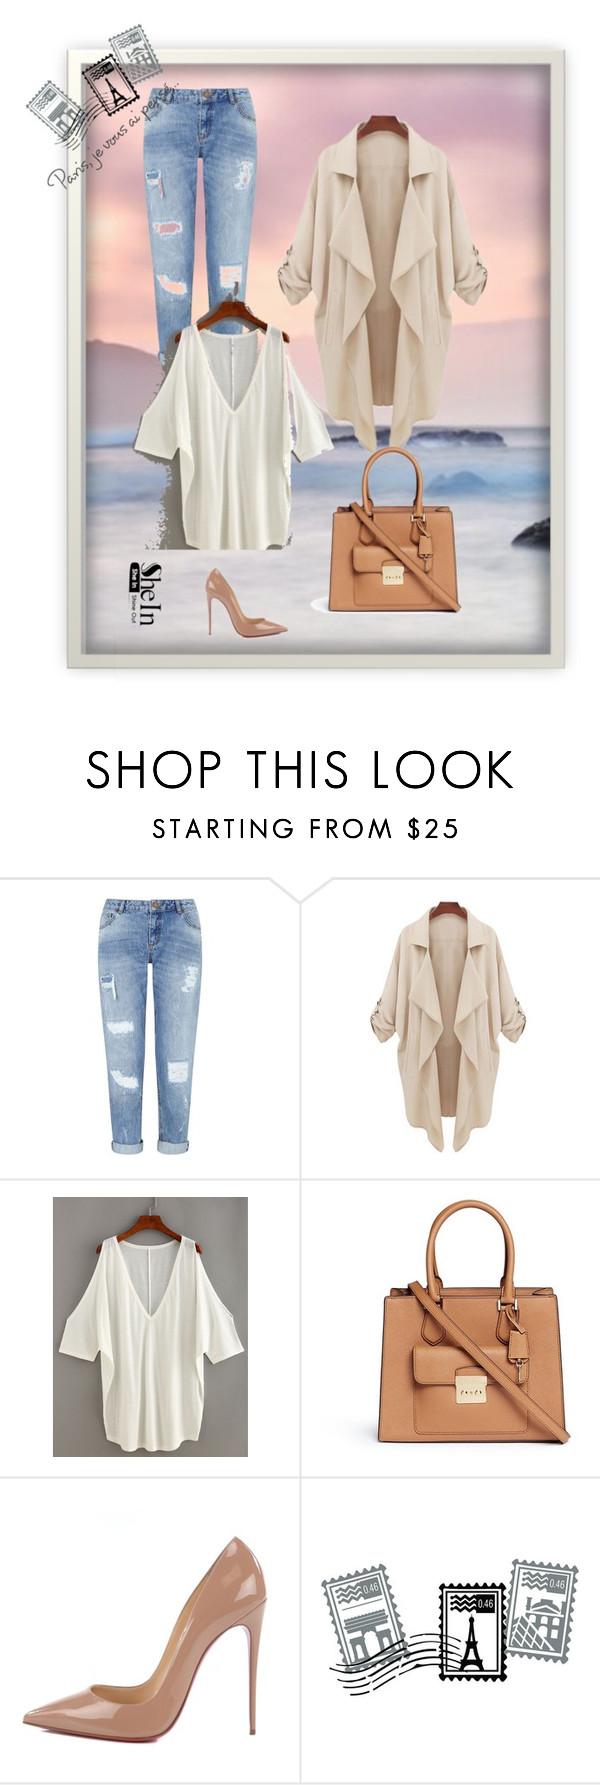 """Shein"" by suzan-2 ❤ liked on Polyvore featuring Seed Design, Miss Selfridge, Michael Kors, Christian Louboutin and Dot & Bo"